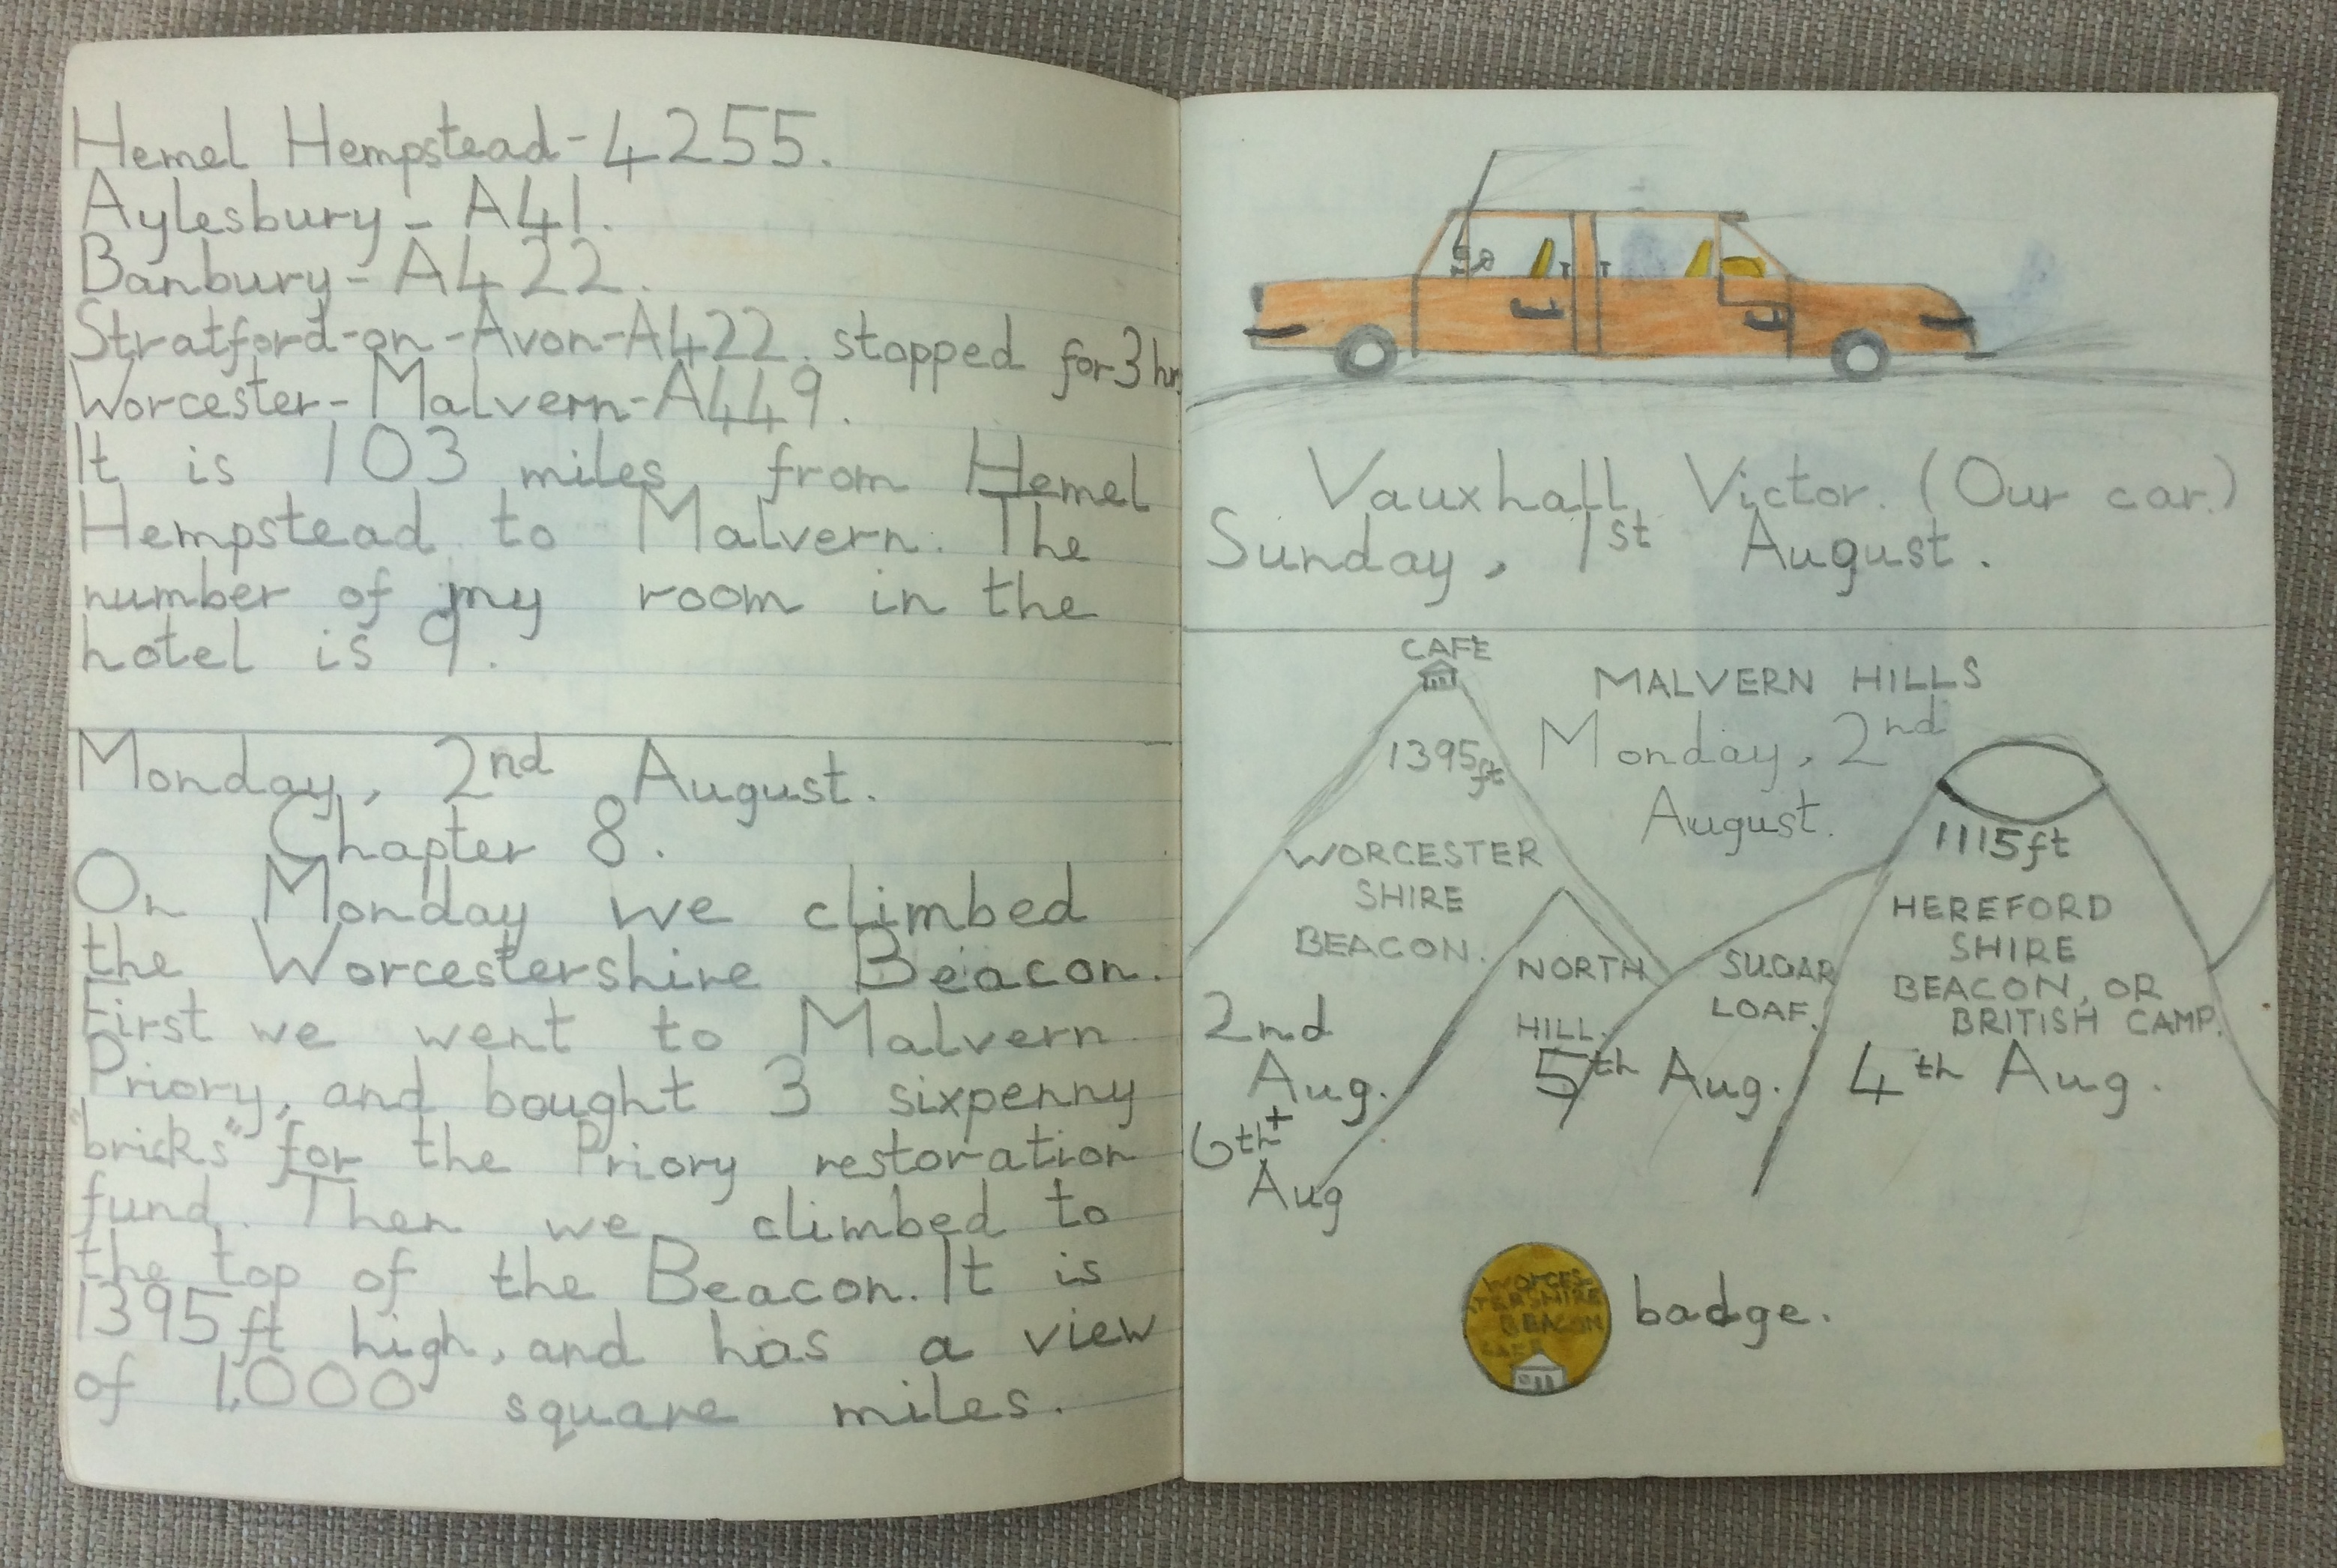 My holiday diary, 1965